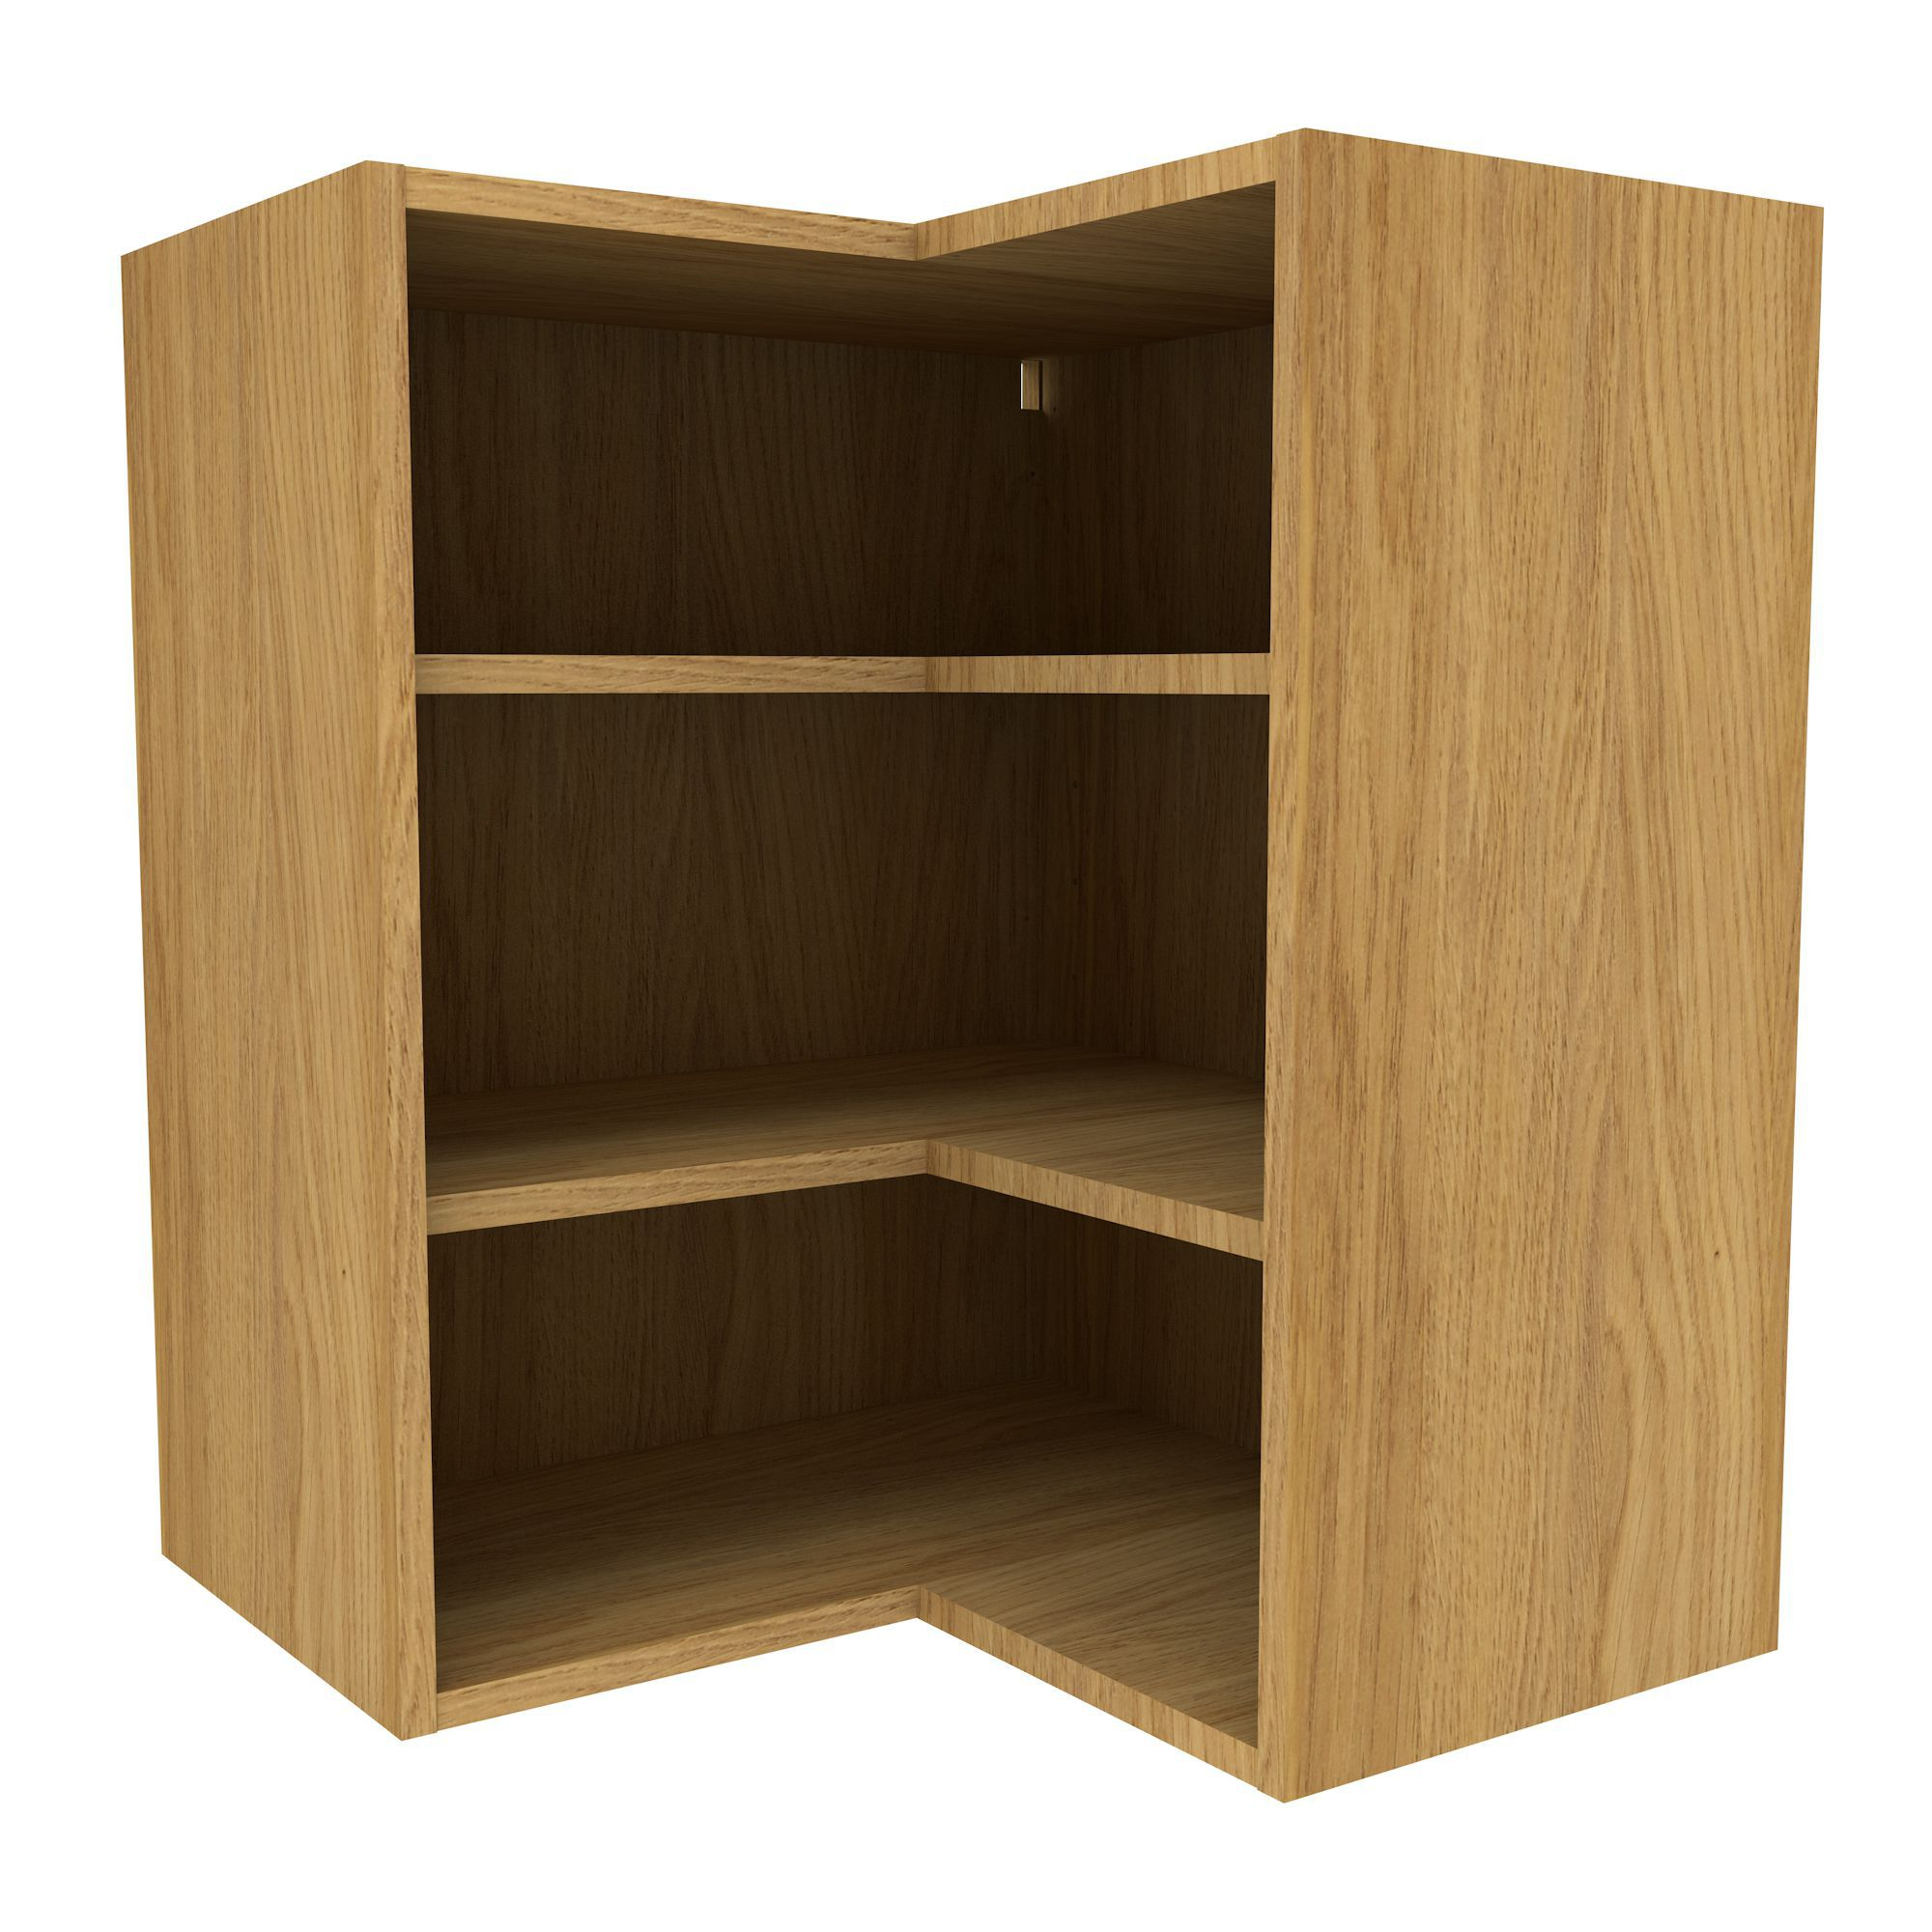 Oak Effect Kitchen Cabinets: Cooke & Lewis Oak Effect Deep Corner Wall Cabinet (W)625mm